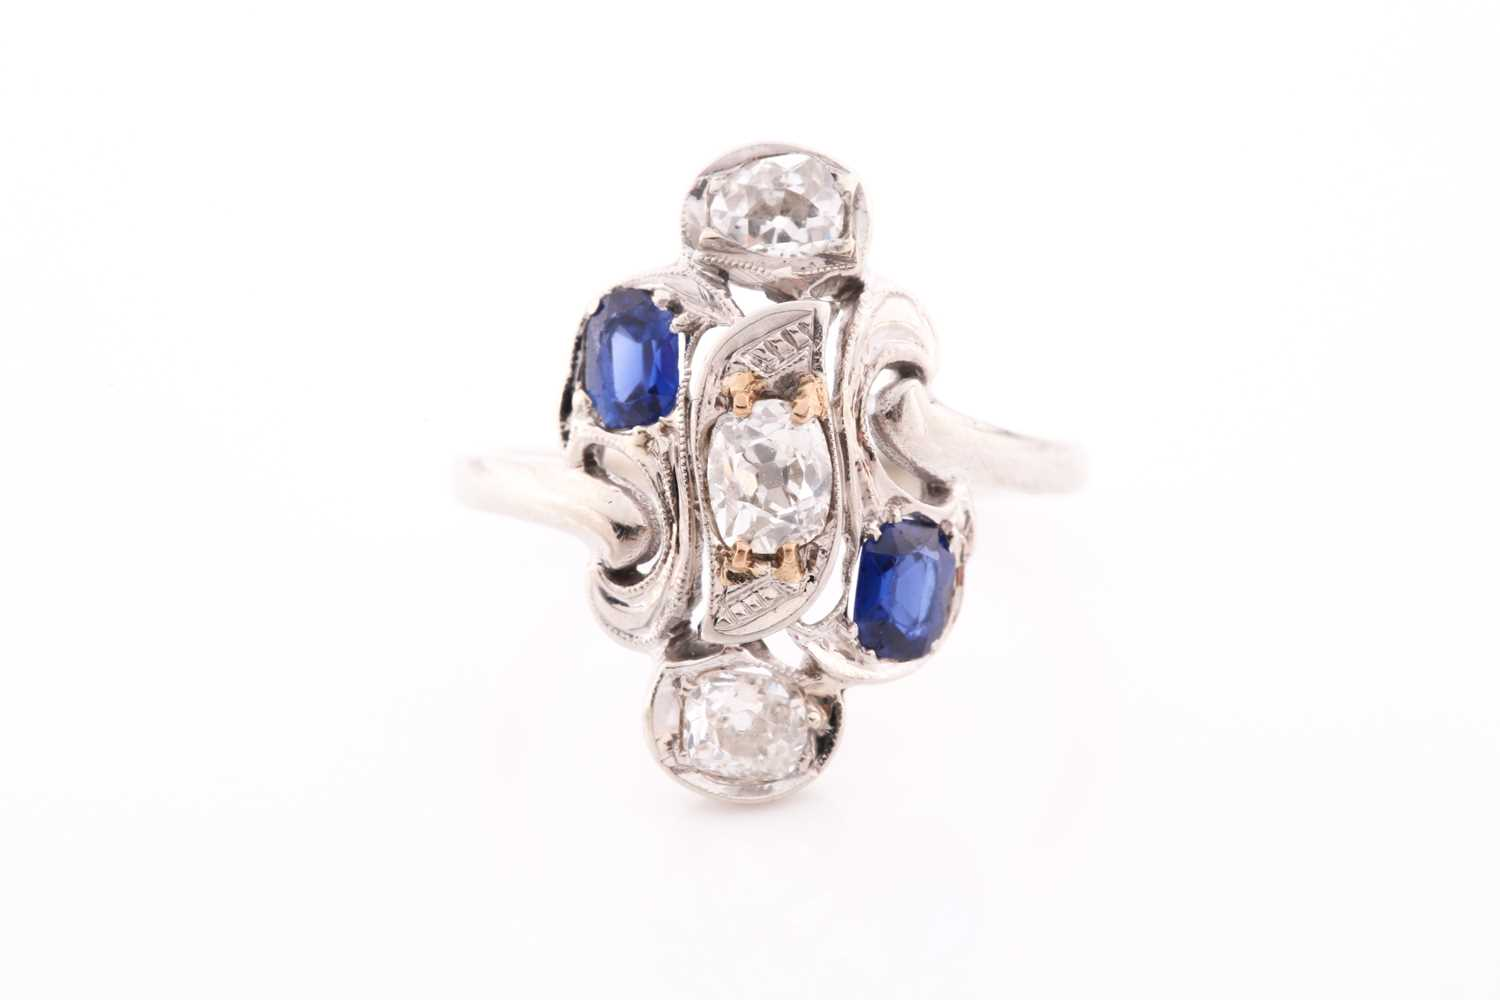 A diamond and sapphire ring, in the Art Nouveau style, the stylised mount inset with old Mine